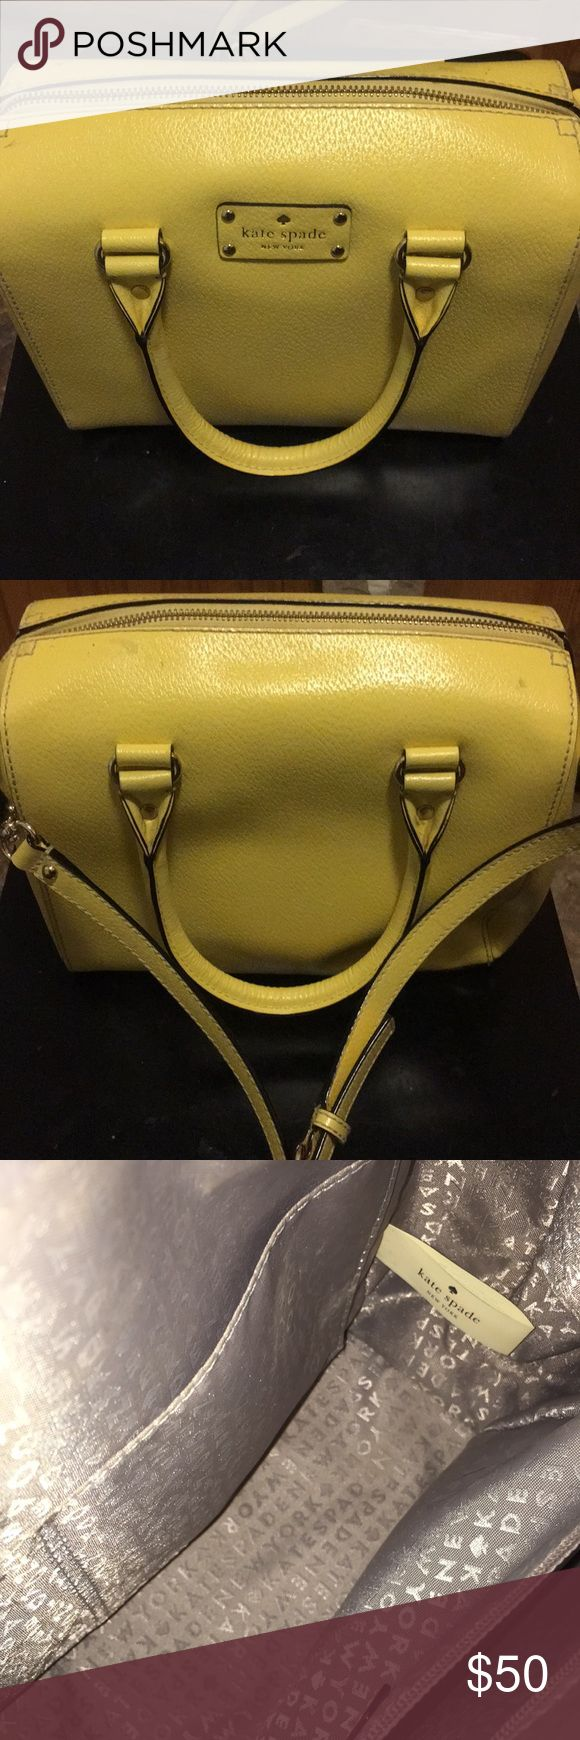 Kate Spade Purse Beautiful yellow purse. Hard leather. Approximately 10 x 10 x 4 with an adjustable strap. Purchased at an outlet mall. kate spade Bags Crossbody Bags